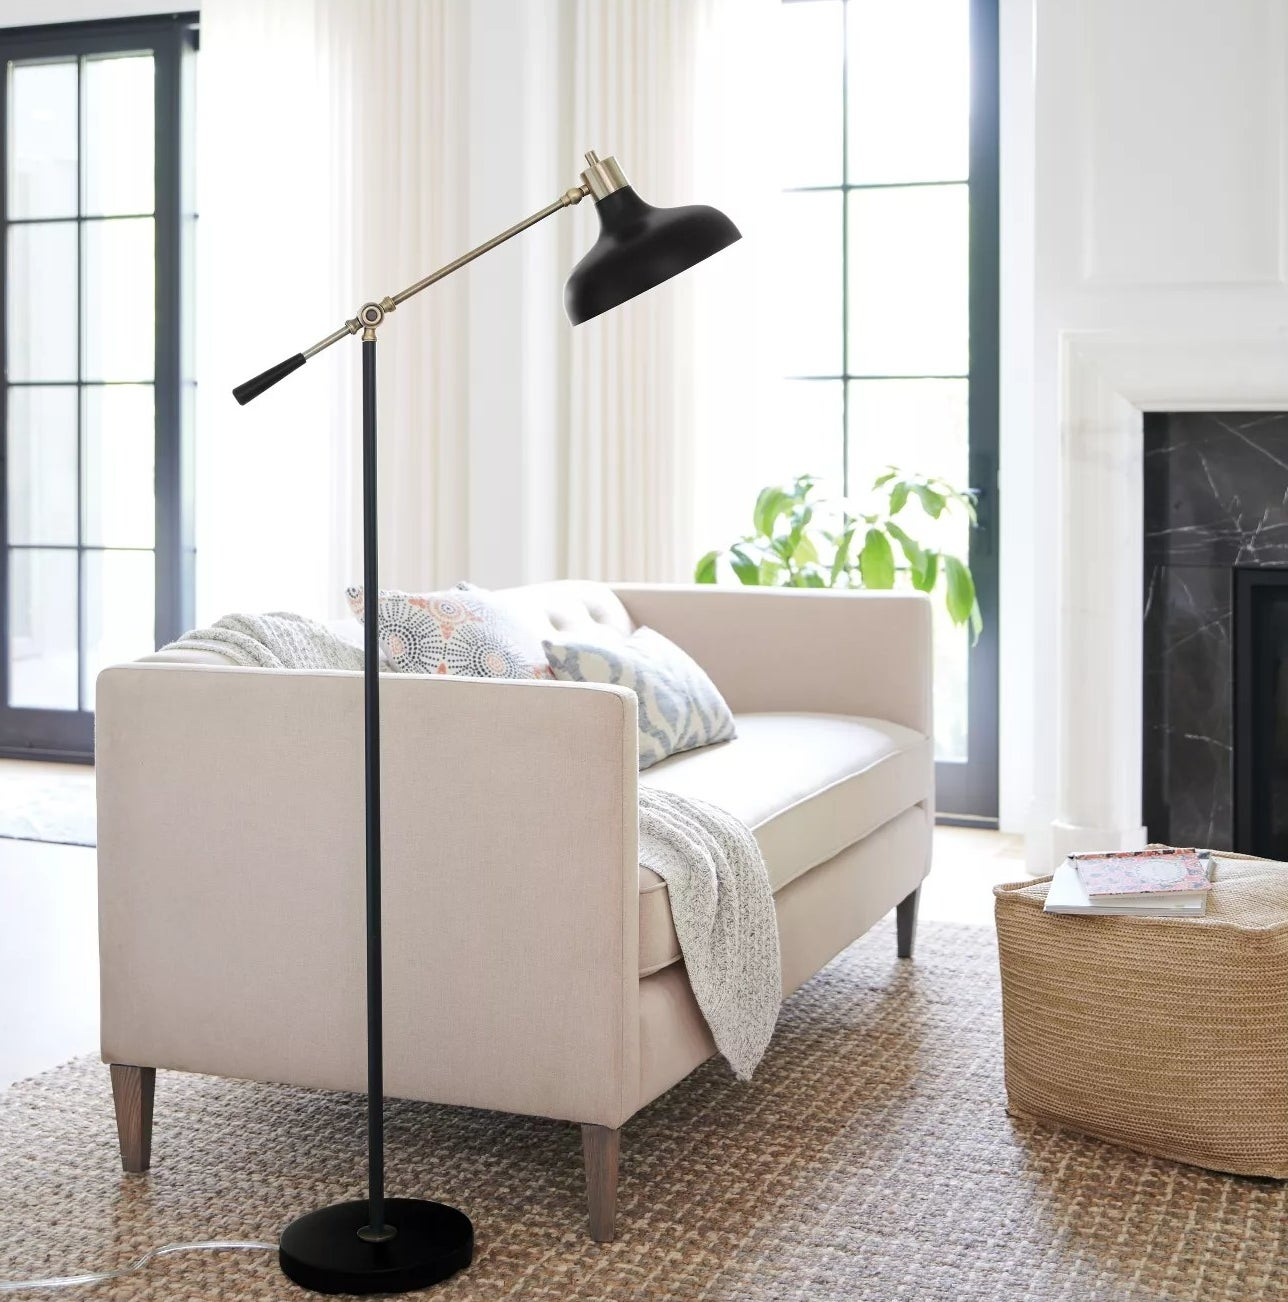 The lamp with an adjustable arm and circular base in a living room